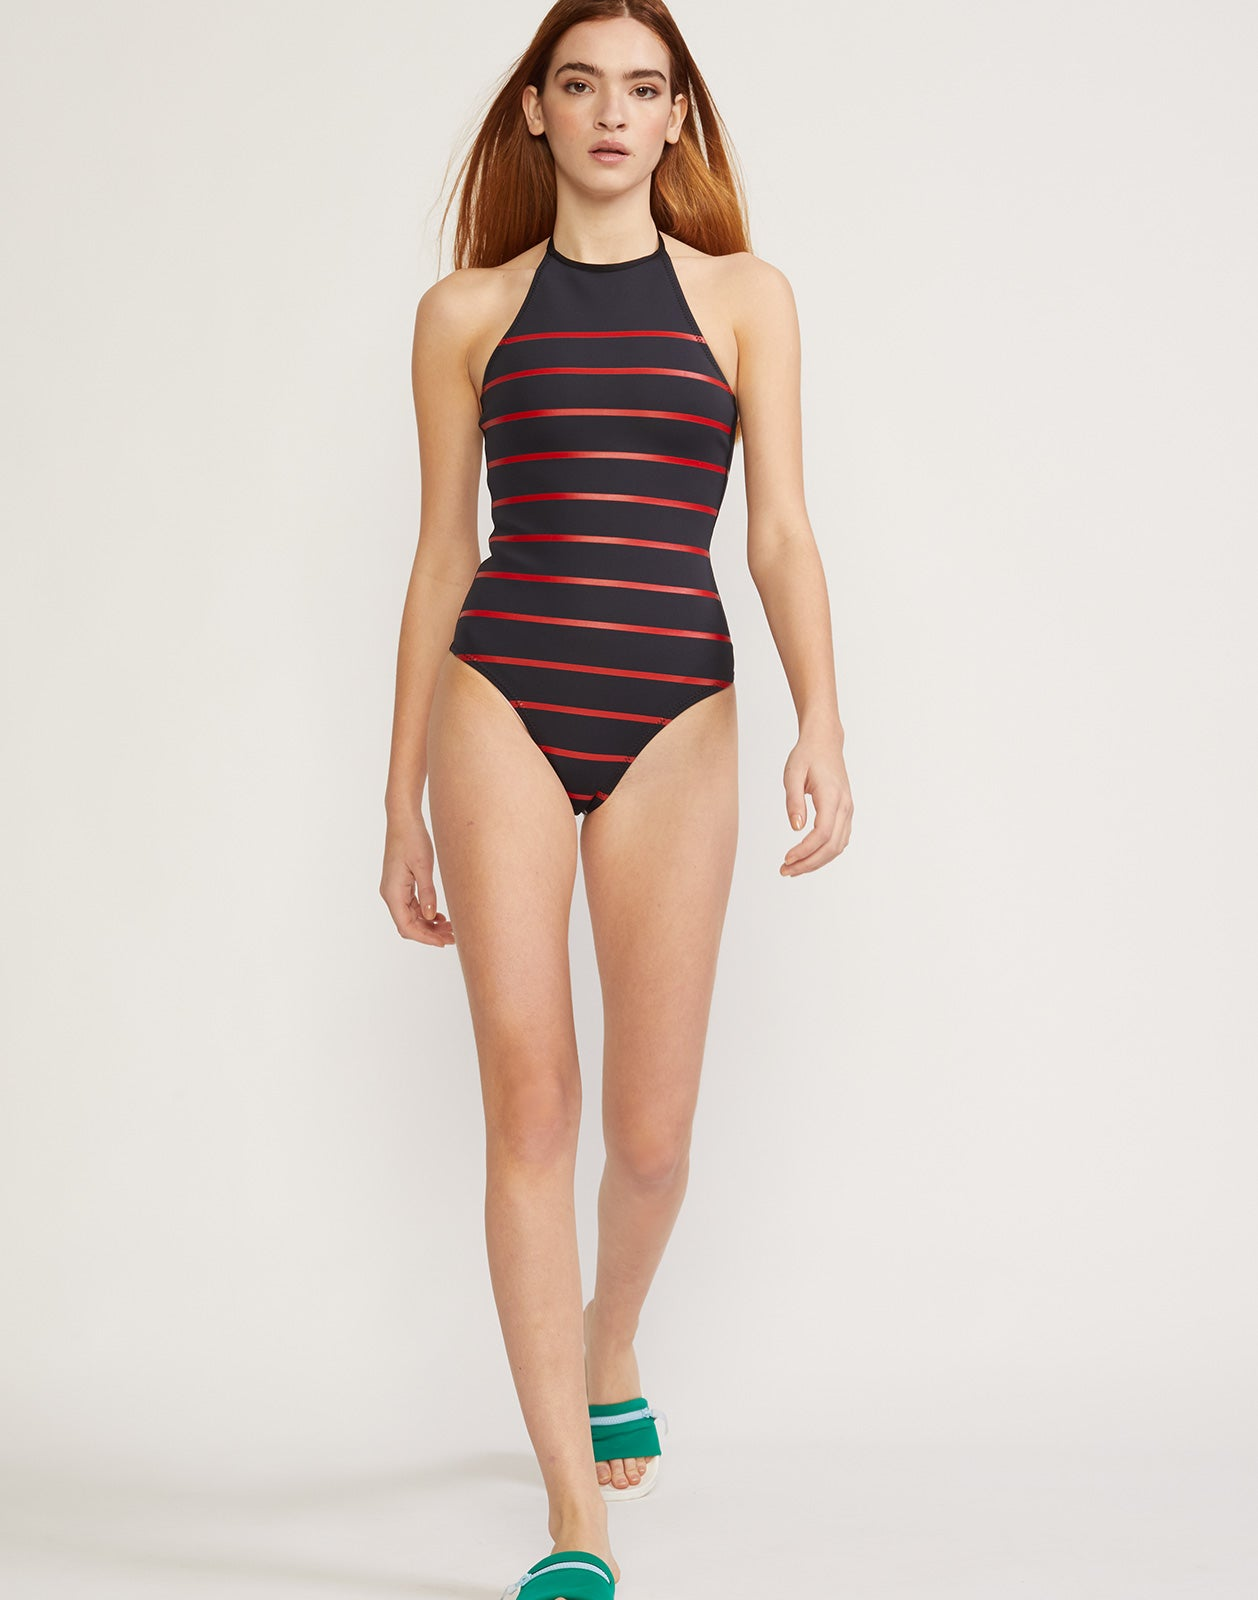 Full length view of model walking in red and navy striped neoprene one piece swimsuit with halter neck.